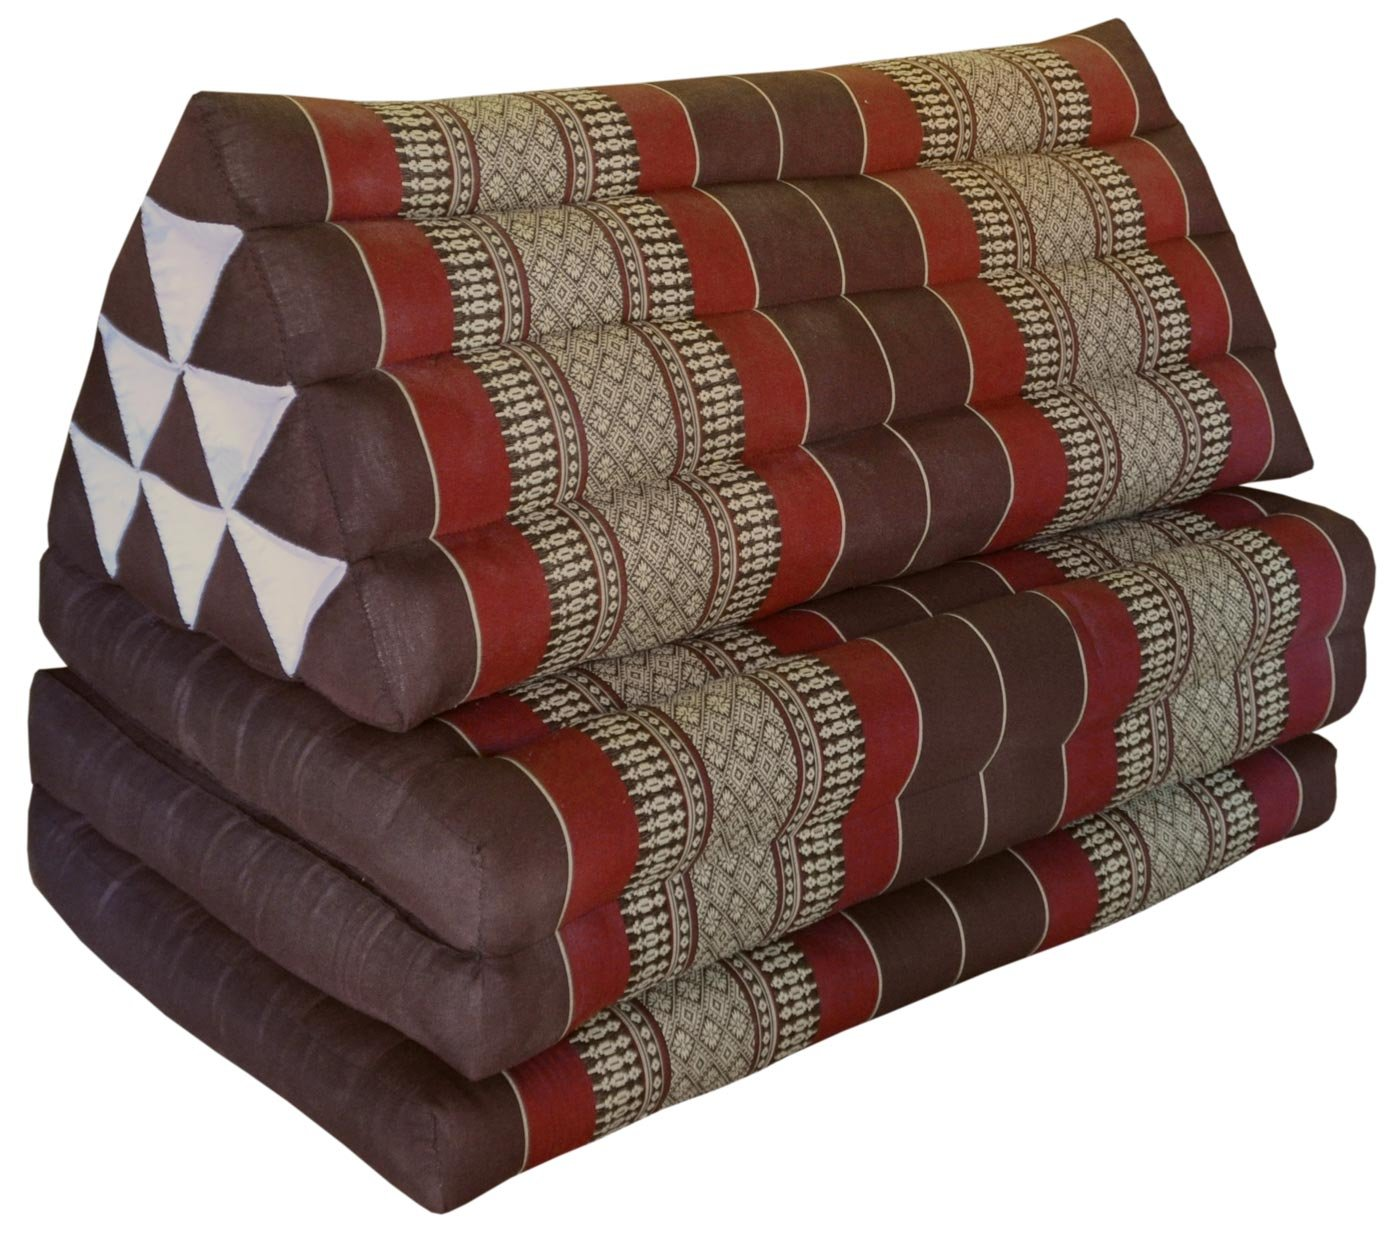 Thai triangle cushion/mattress XXL, with 3 folding seats, brown/burgundy, sofa, relaxation, beach, pool, meditation, yoga, made in Thailand. (82518) by Wilai GmbH